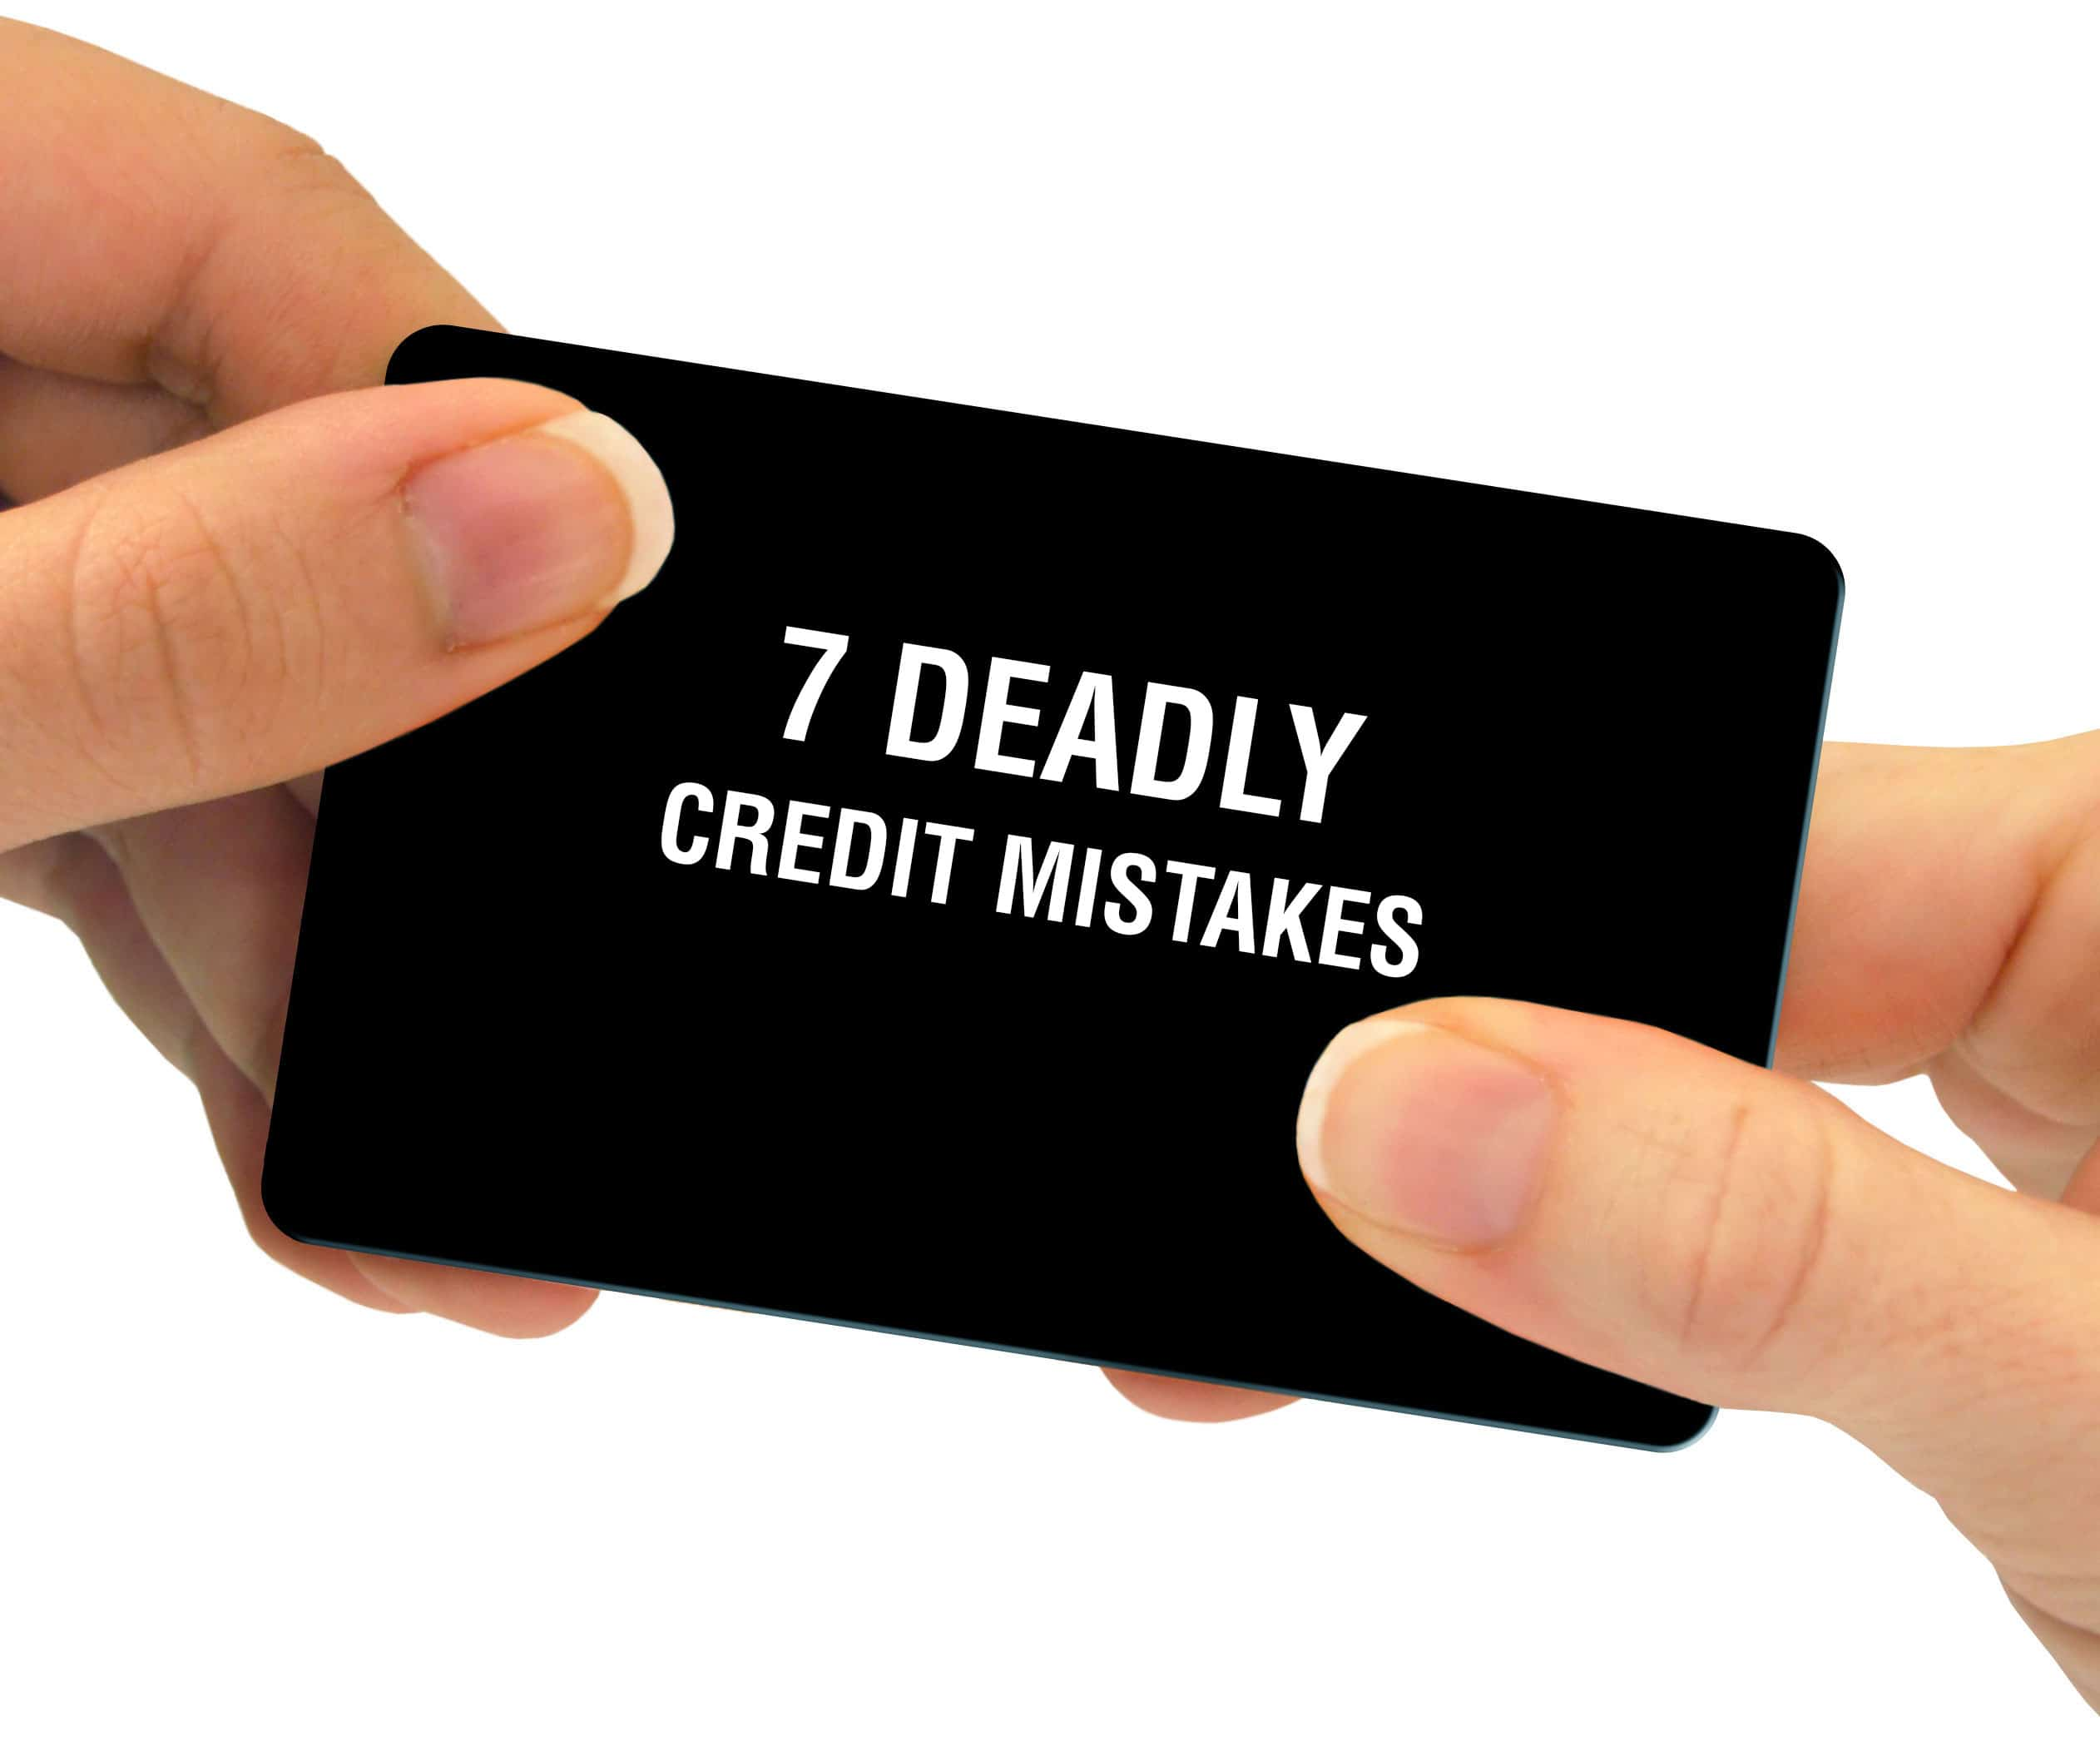 7-deadly-credit-mistakes